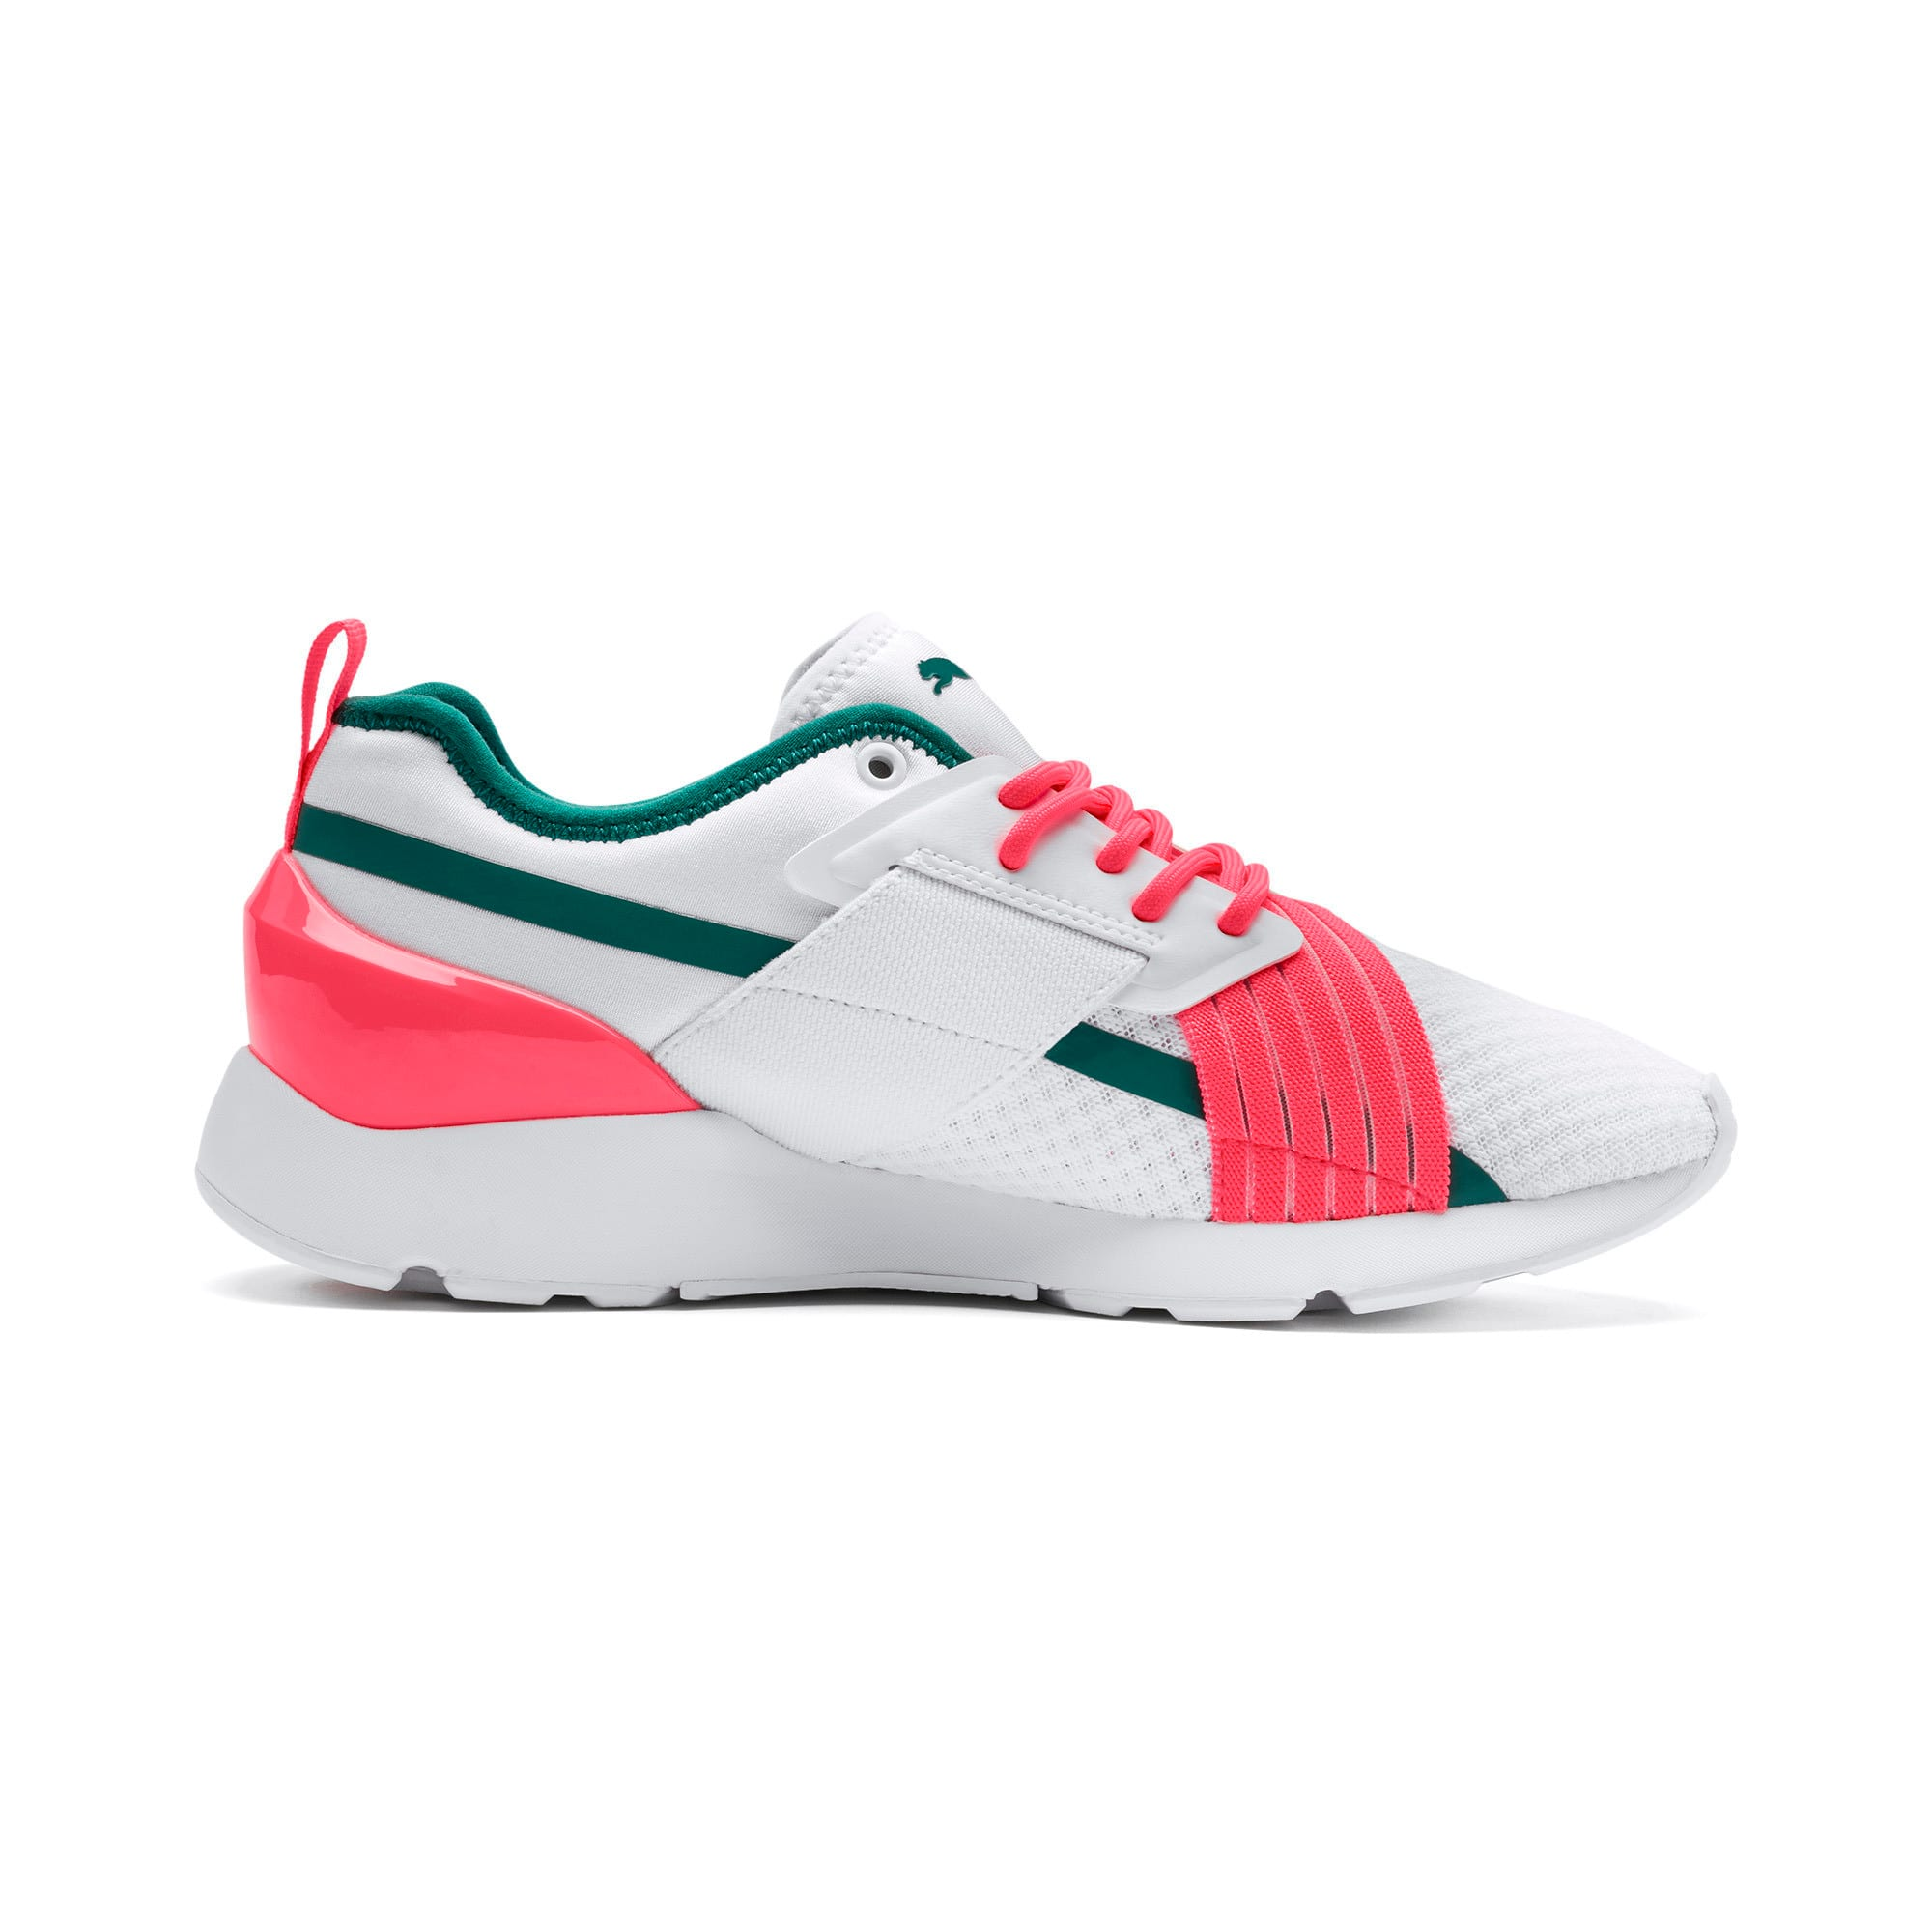 Thumbnail 6 of Muse X-2 Damen Sneaker, Puma White-Pink Alert, medium